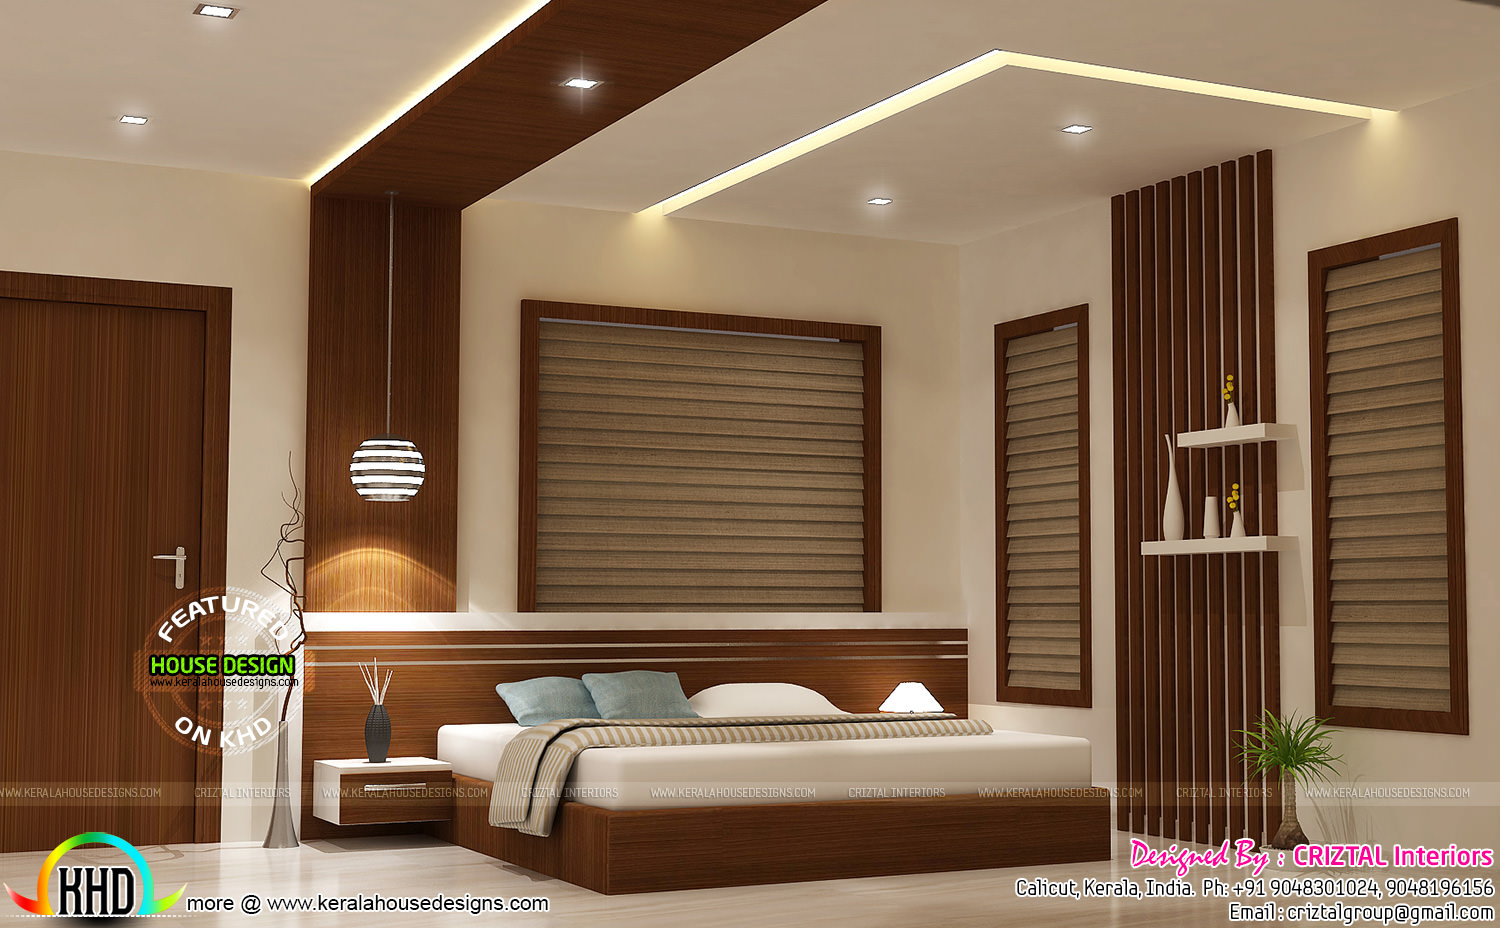 Bedroom dining hall and living interior kerala home for Kerala interior designs